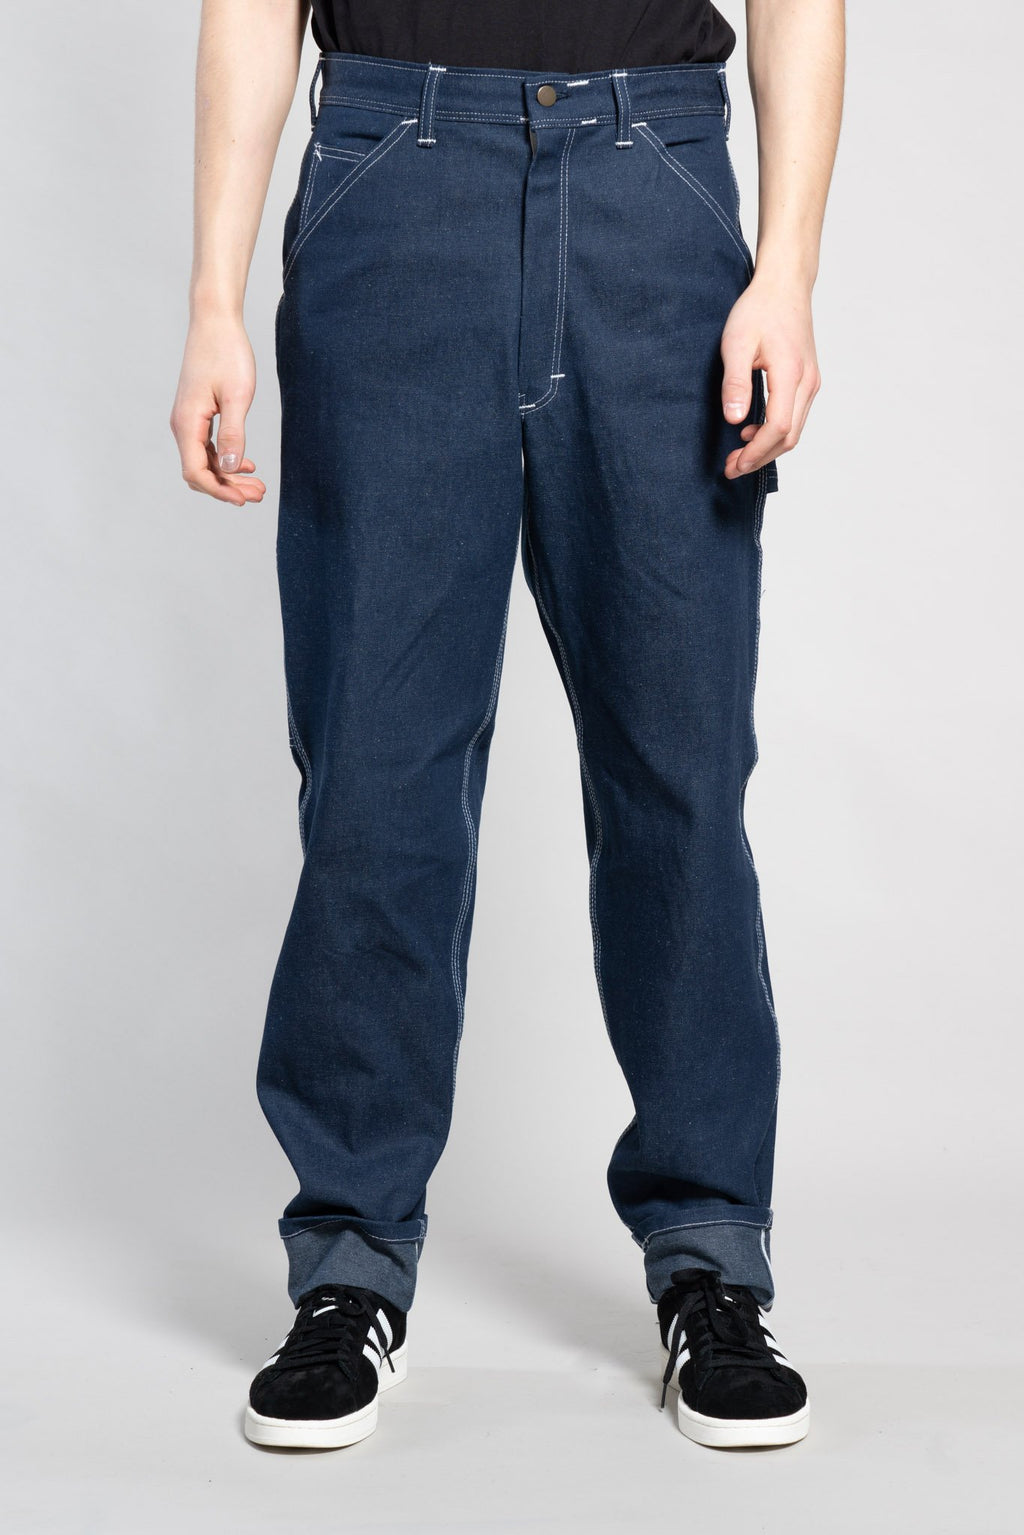 80's Painter Pant - 10oz Denim